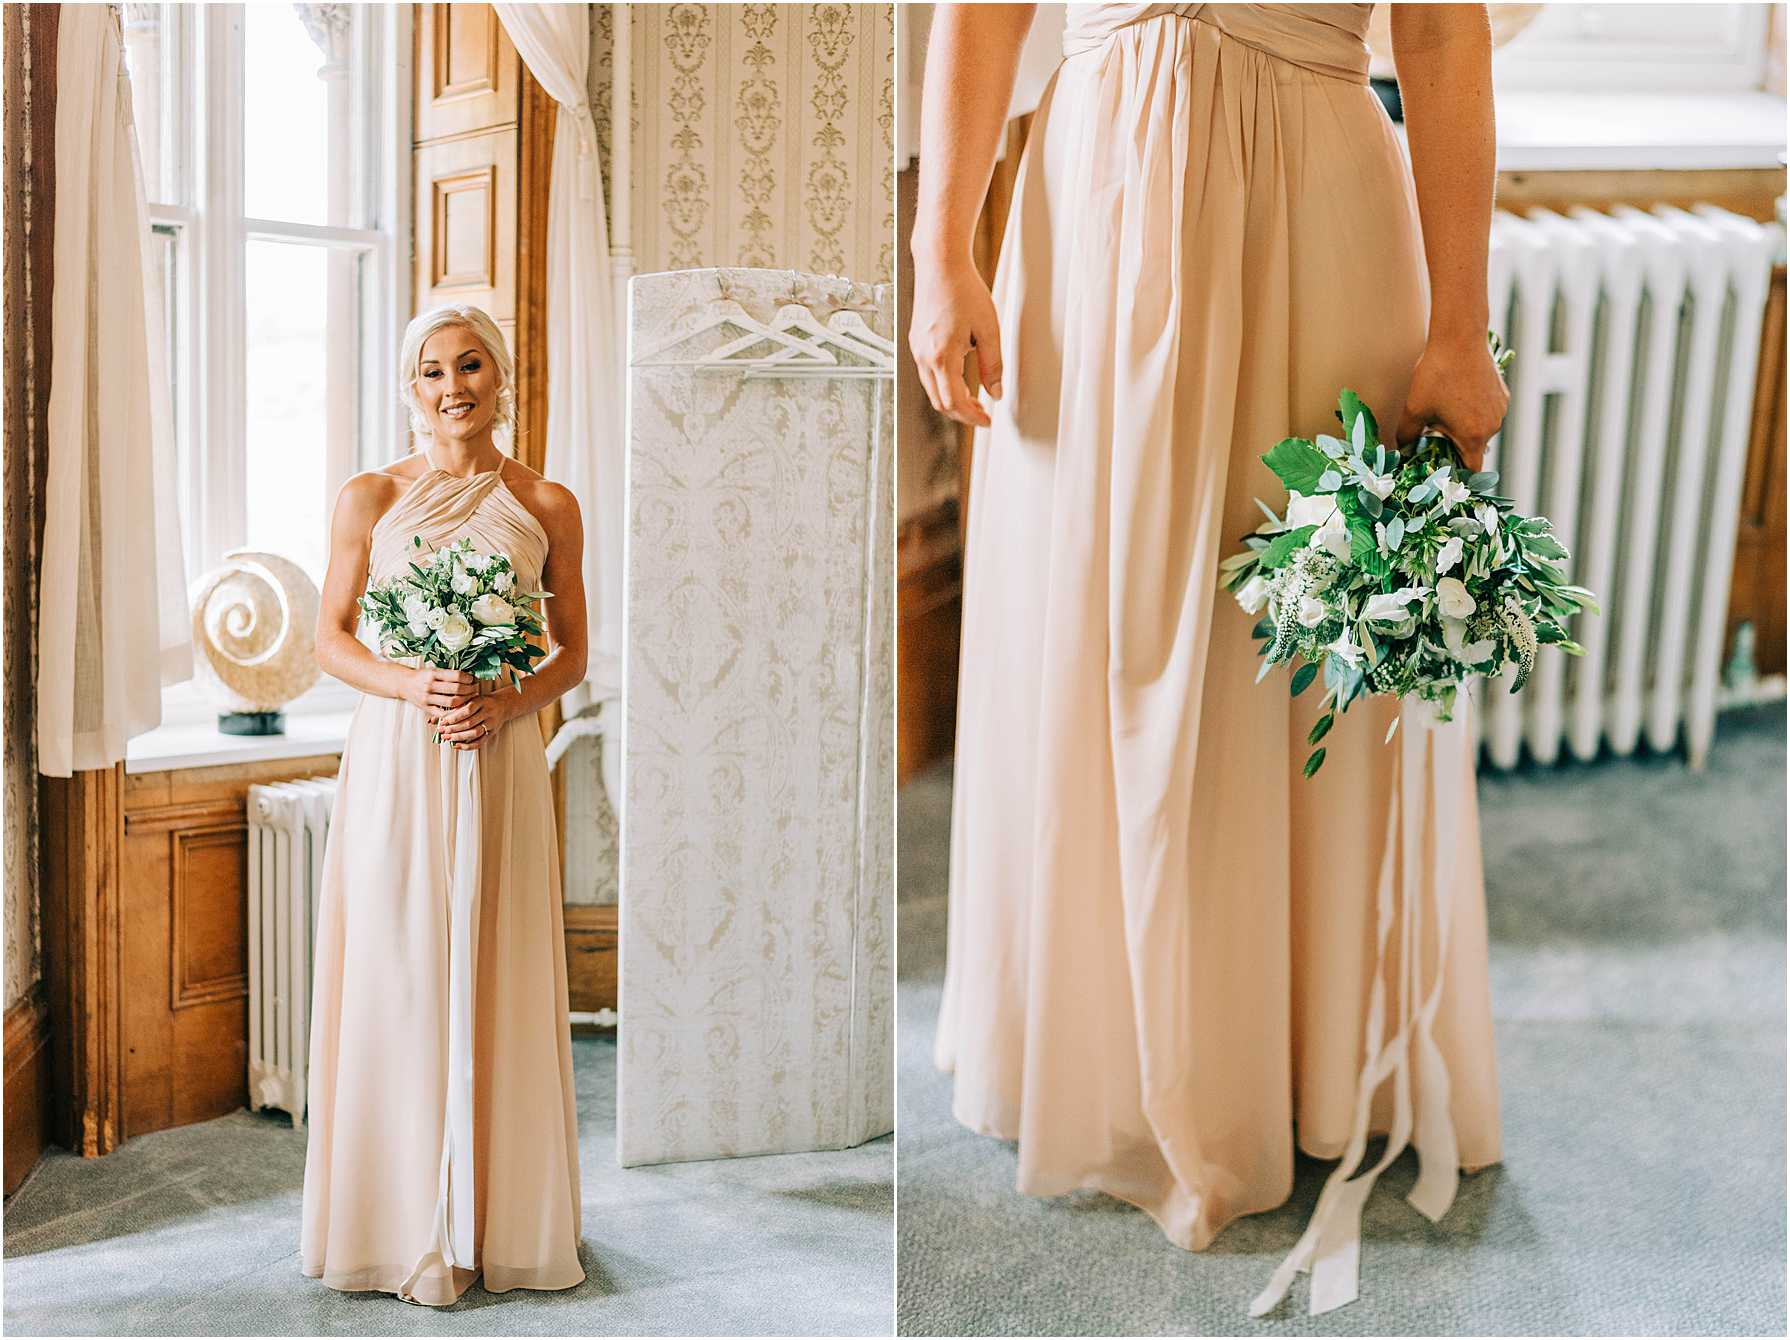 bridesmaid wearing pale coral dress holding a bouquet of white and green flowers